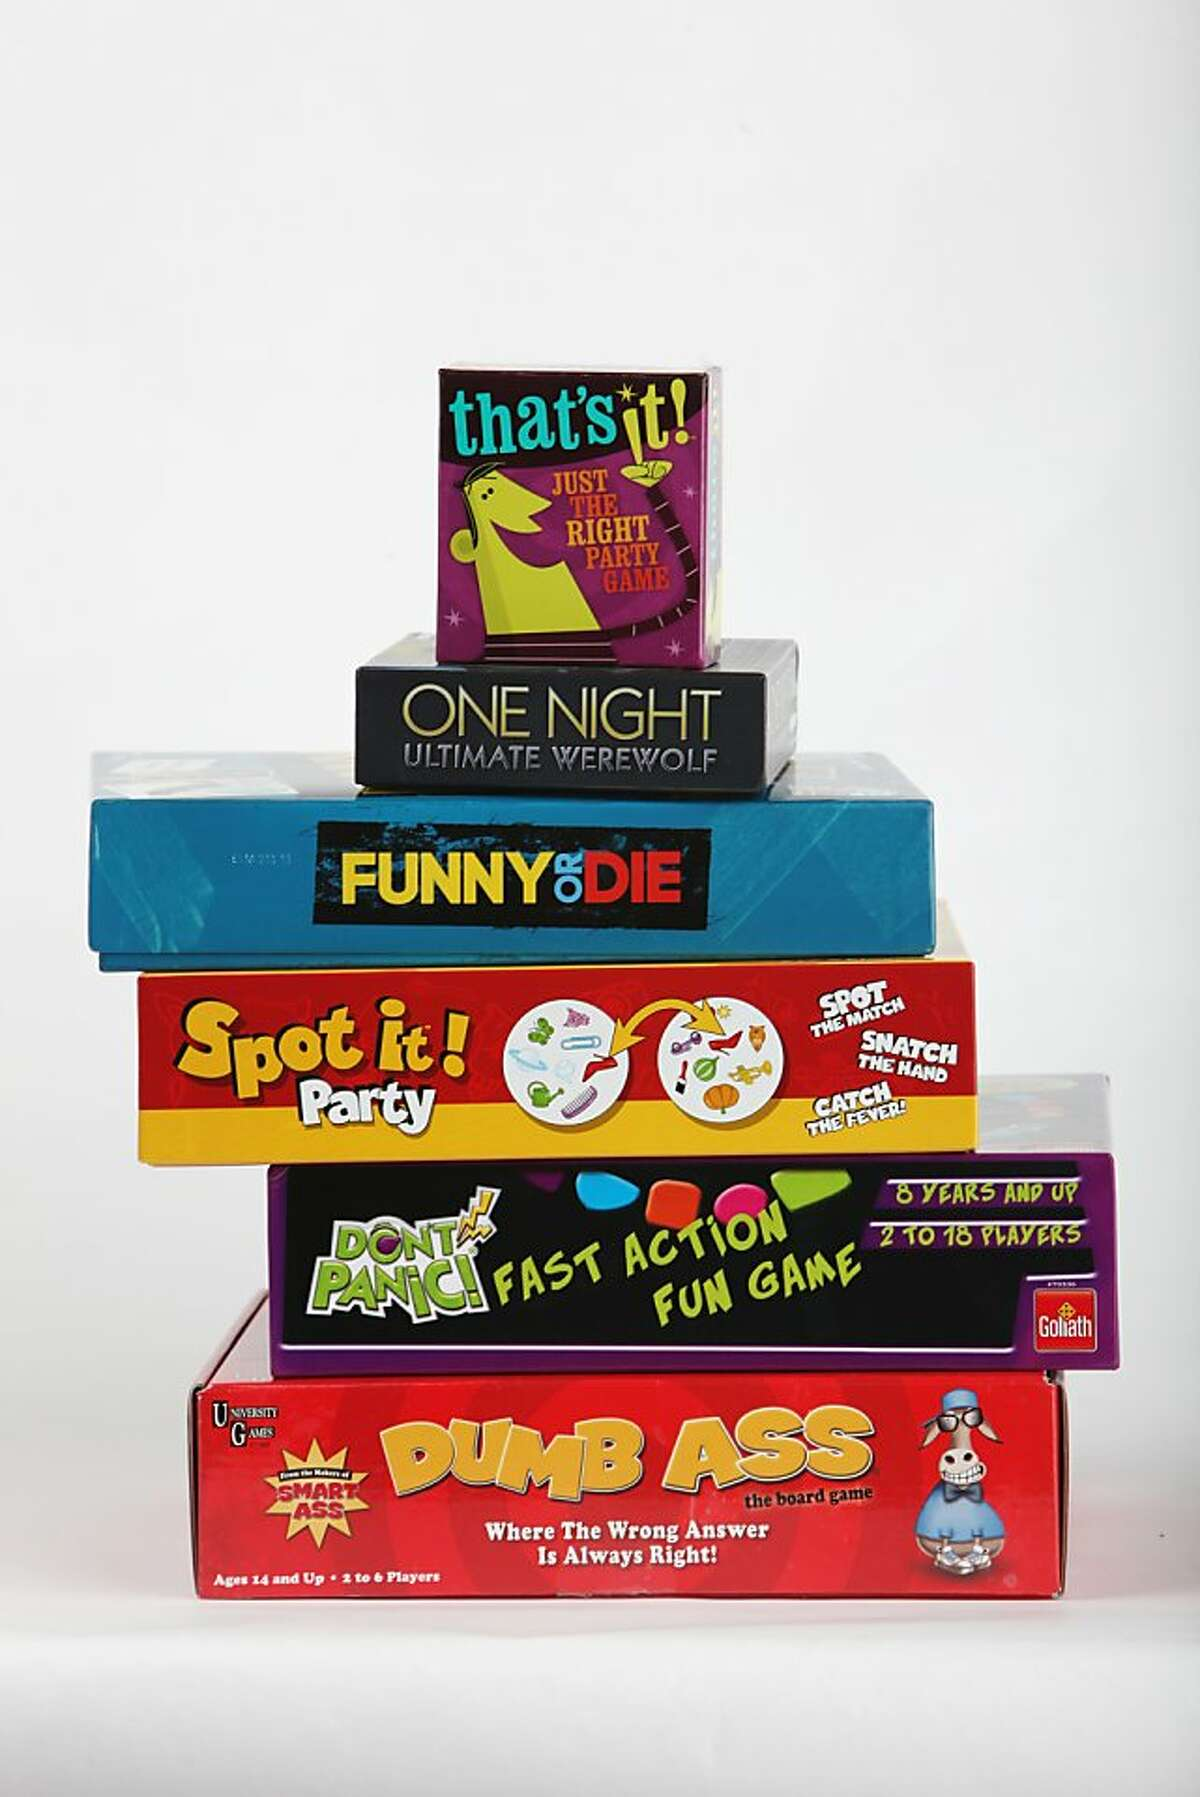 A selection of party games for the annual consumer guide to the year's board games on Tuesday, November 26, 2013 in San Francisco, Calif.